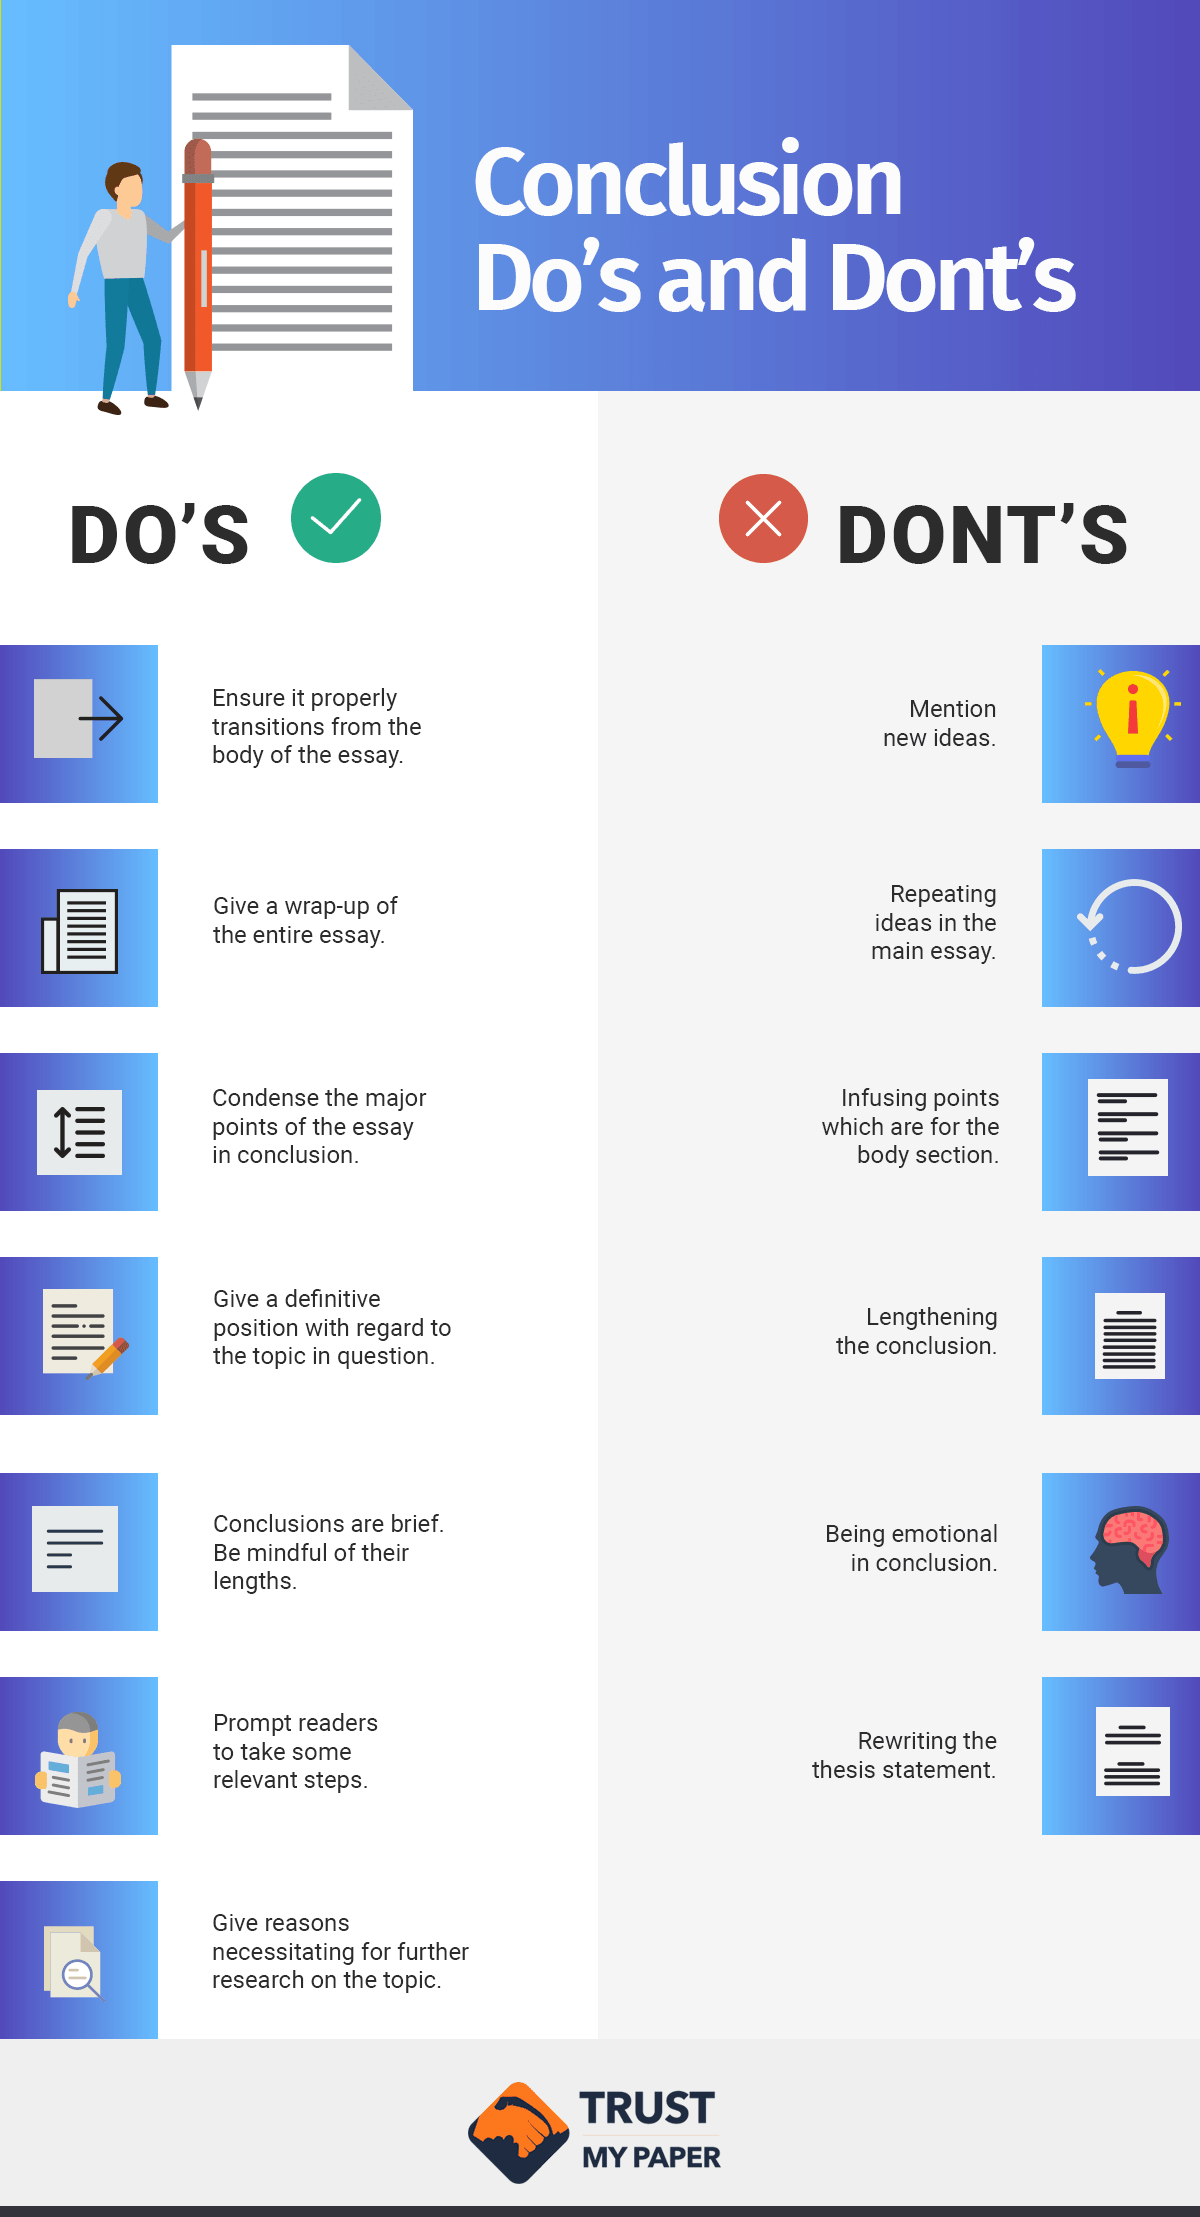 Conclusion Dos and Donts infographic